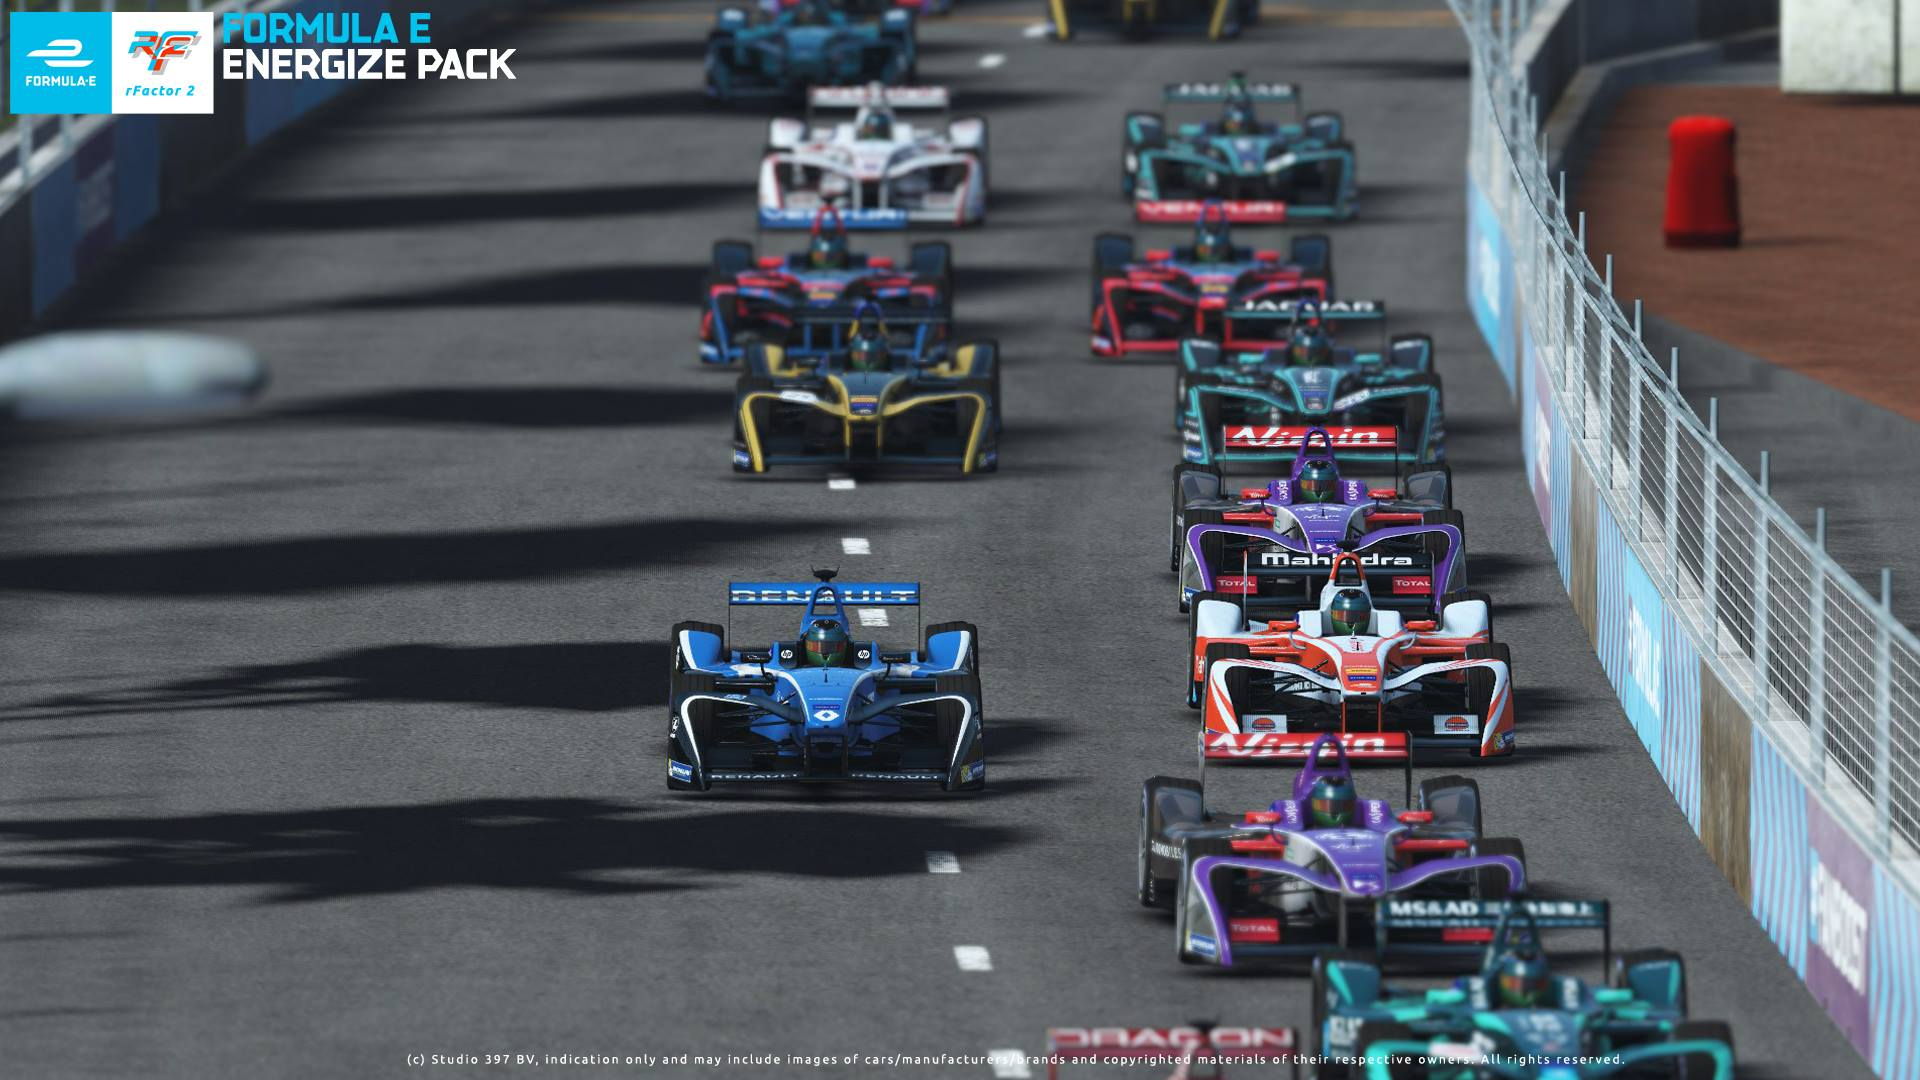 Formula E Energize Pack Released On Rfactor 2 Pitlanes